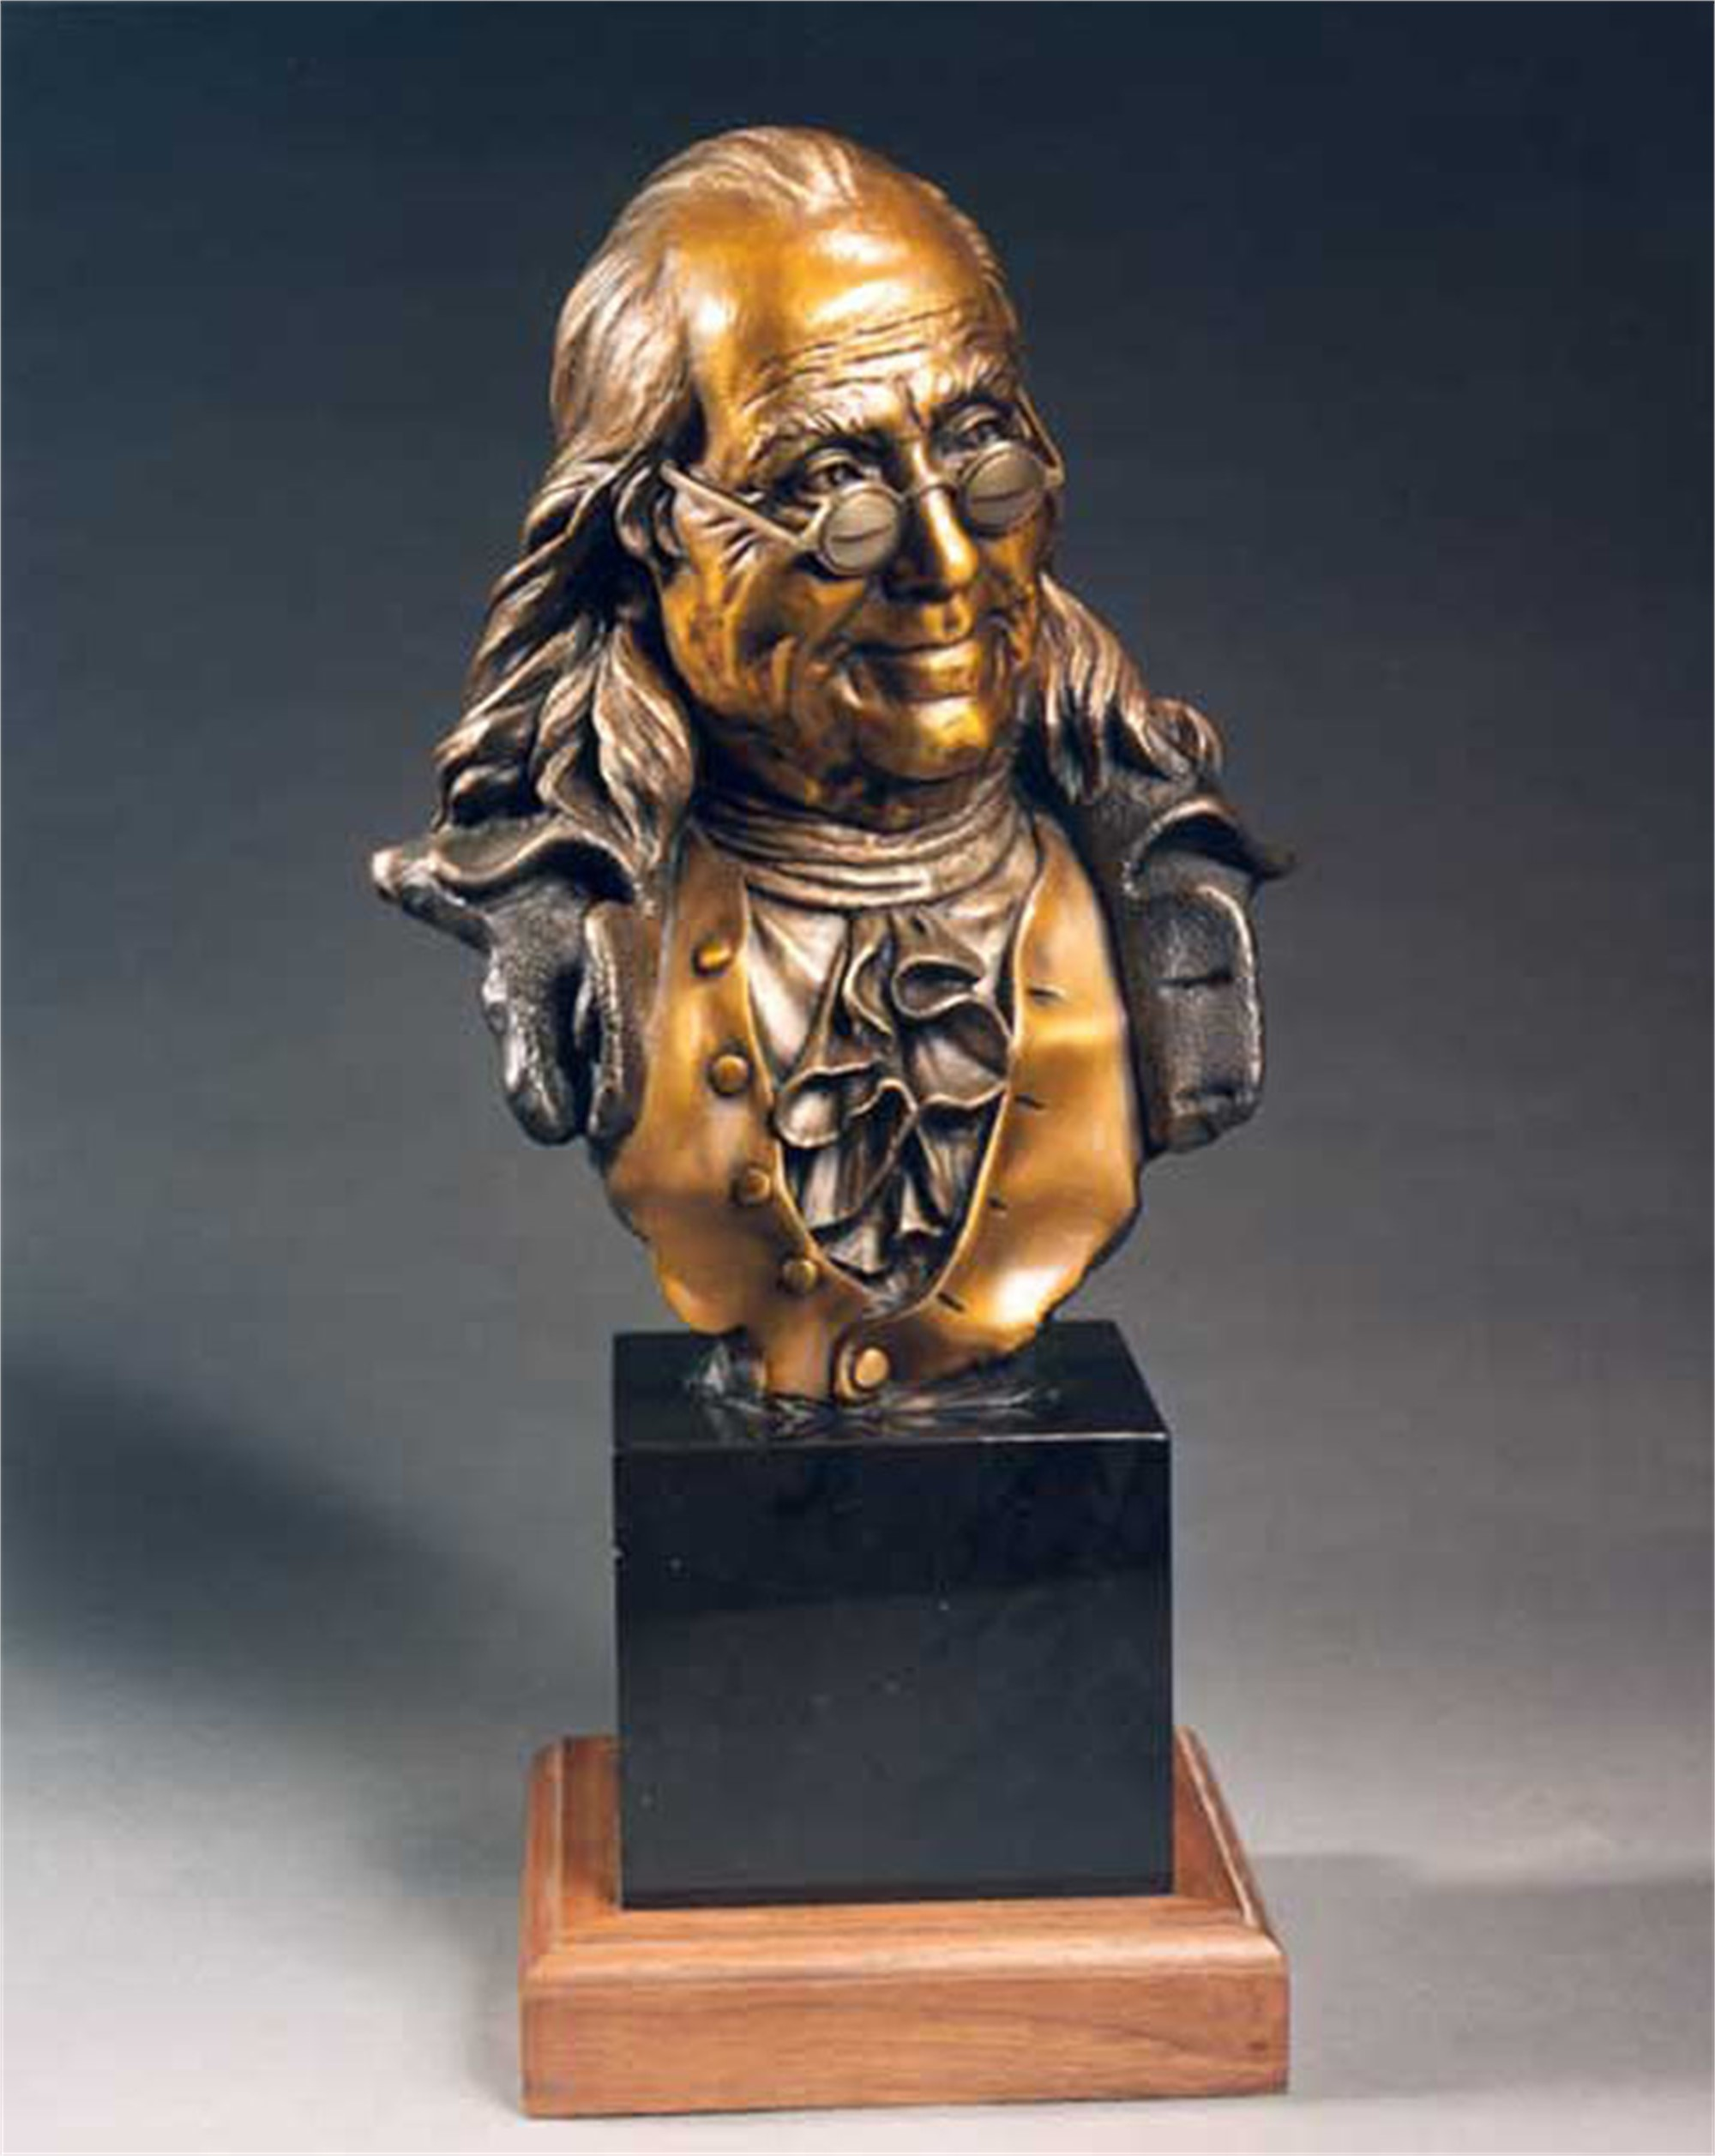 Ben Franklin Bust by George Lundeen